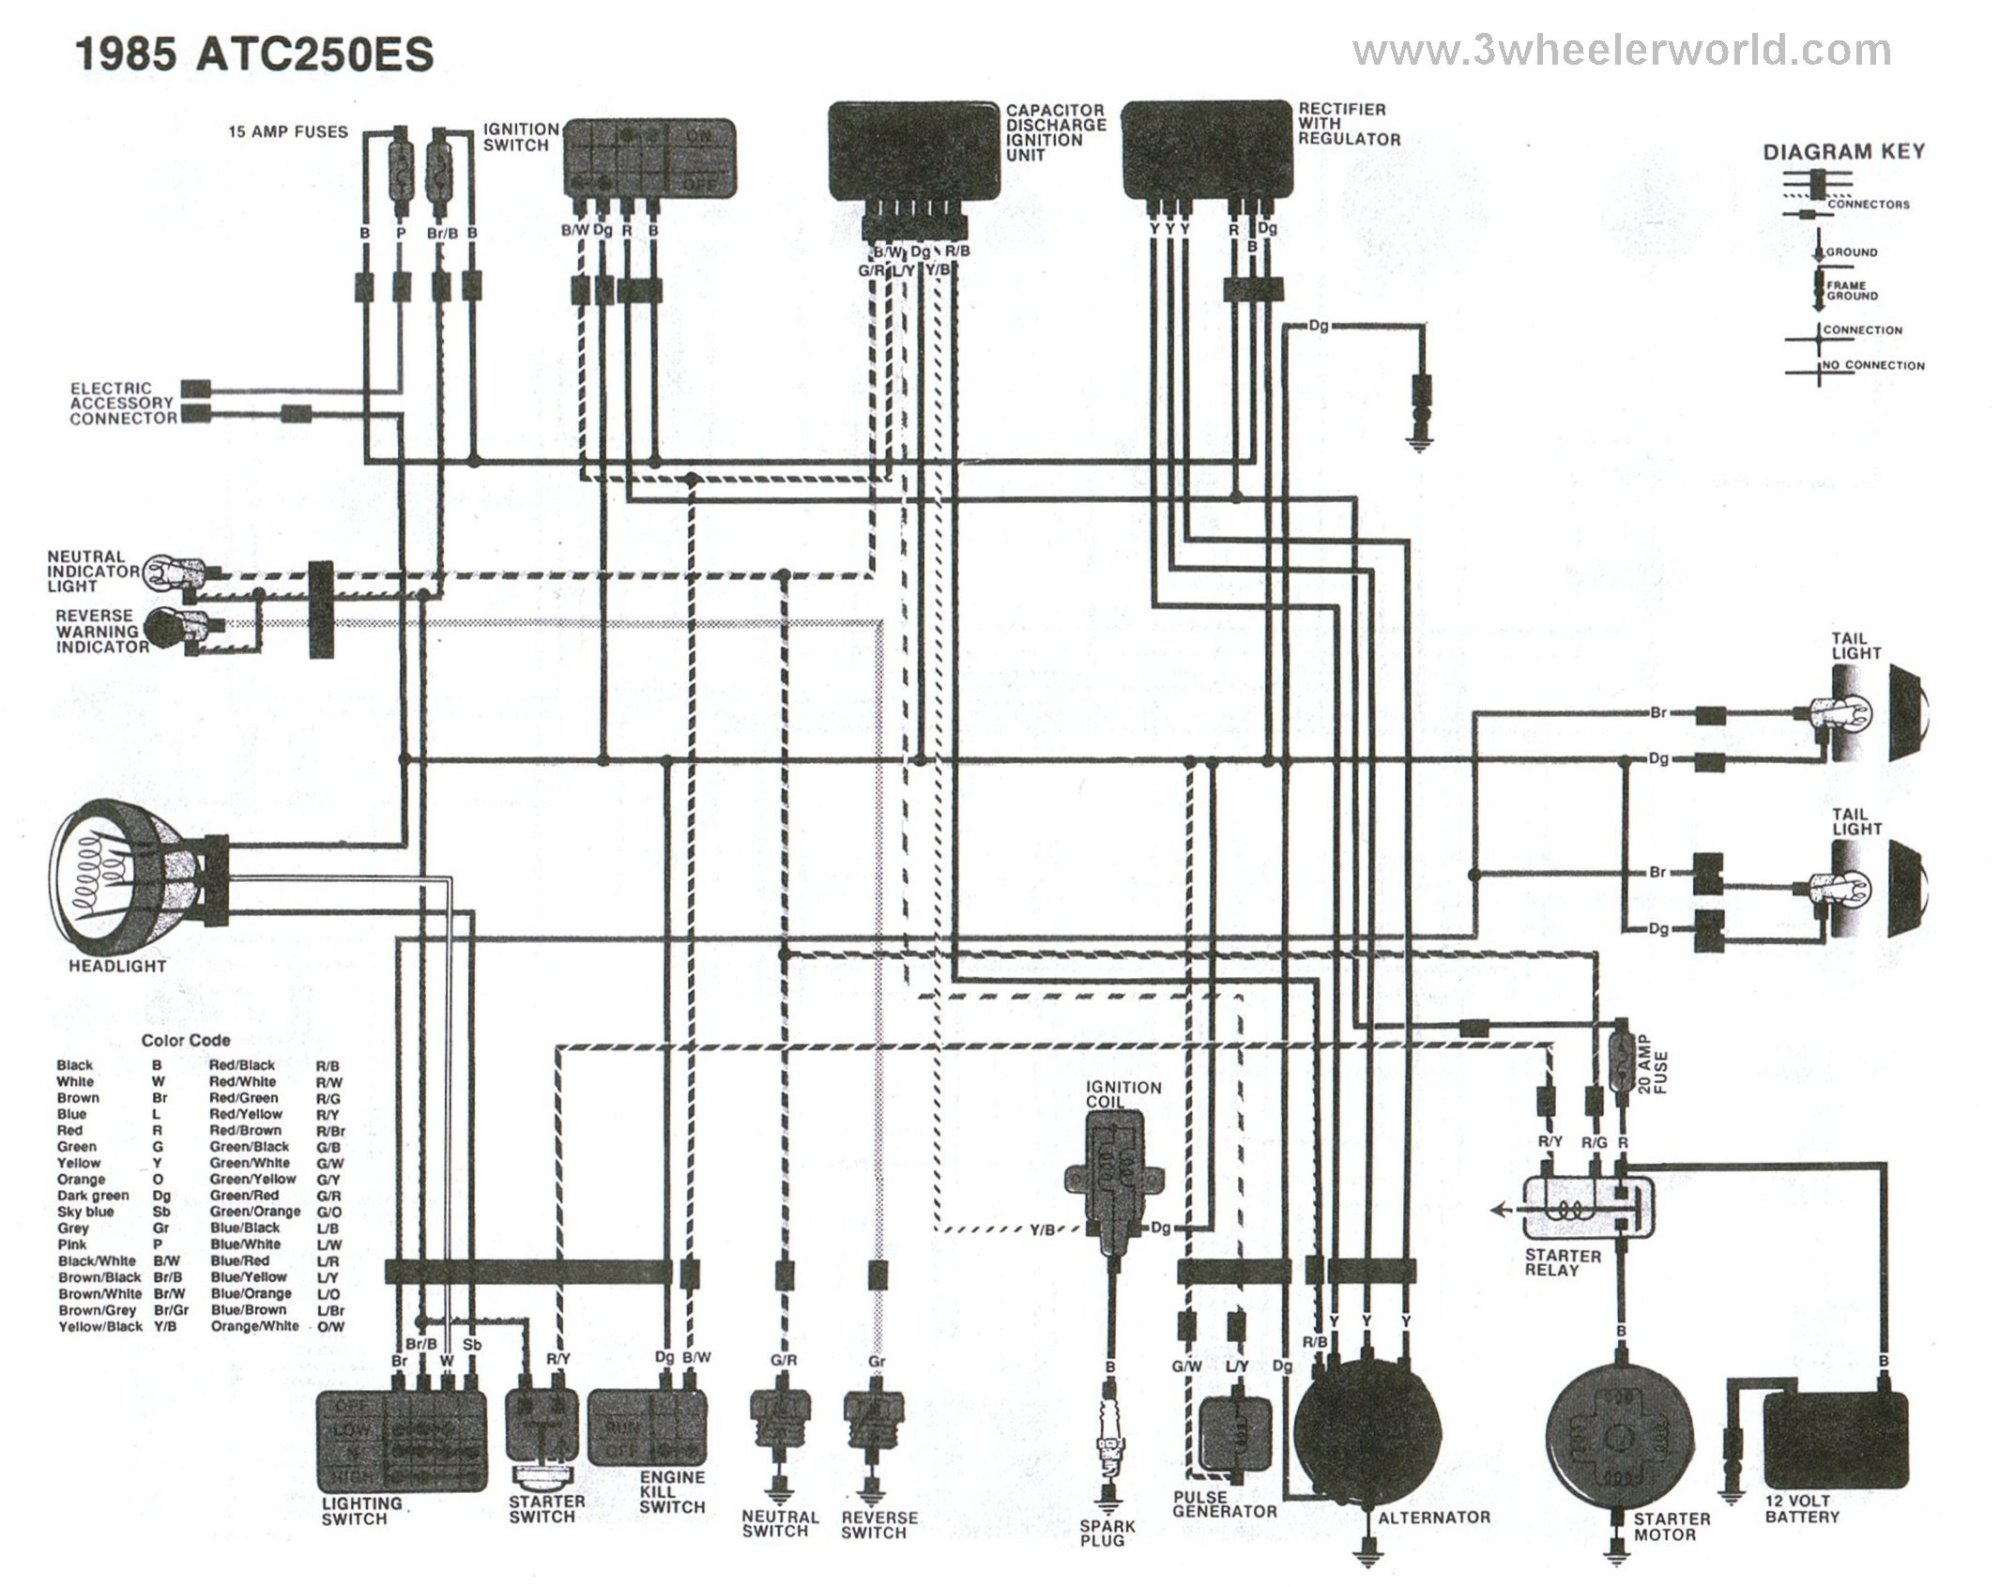 hight resolution of honda 200es wiring diagram wiring diagram schematics yfz 450 wiring diagram trx 250 wiring diagram